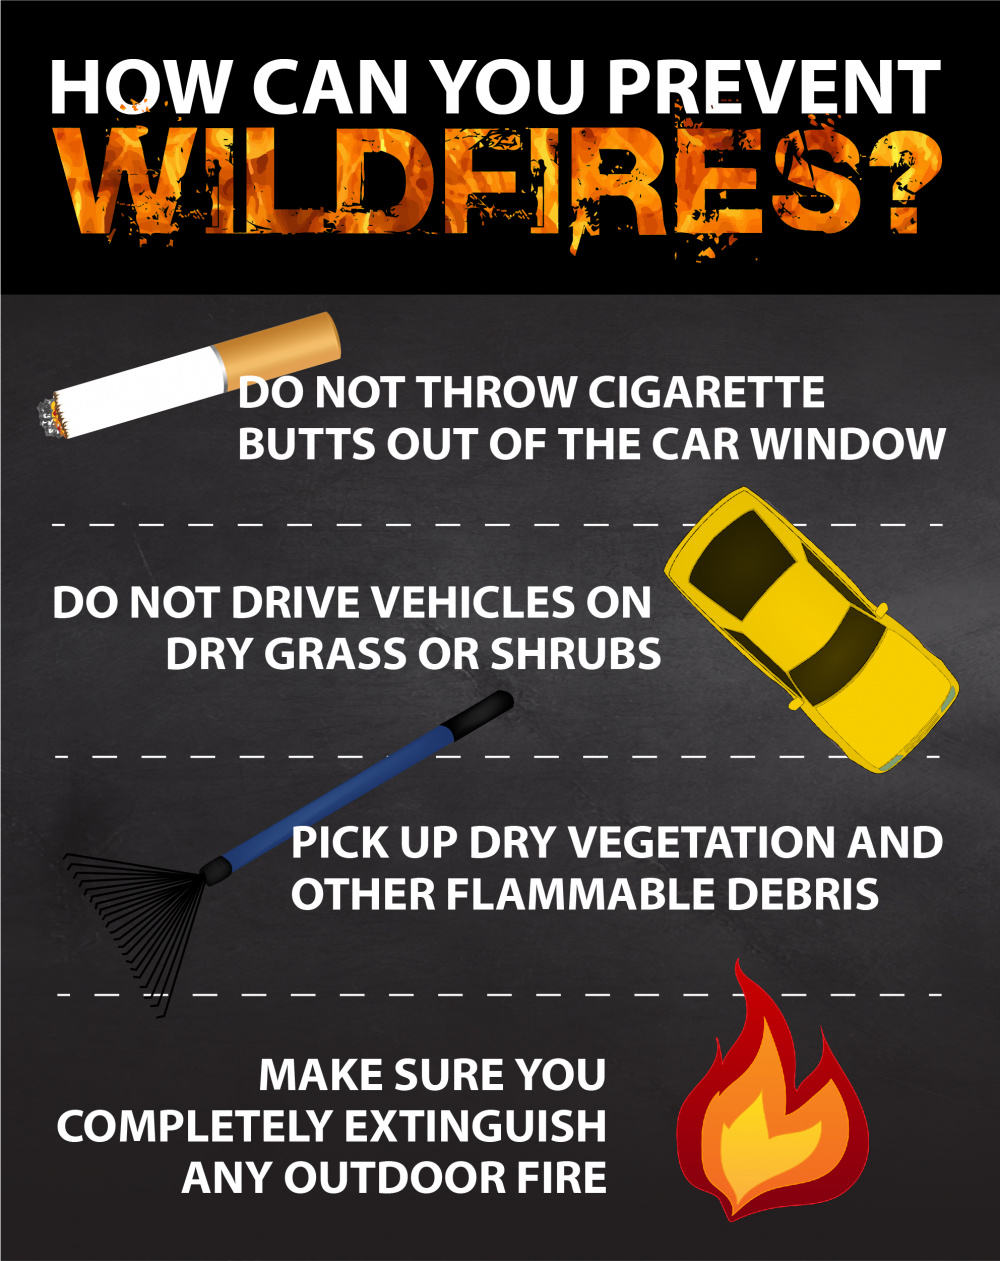 How Can You Prevent Wildfires?